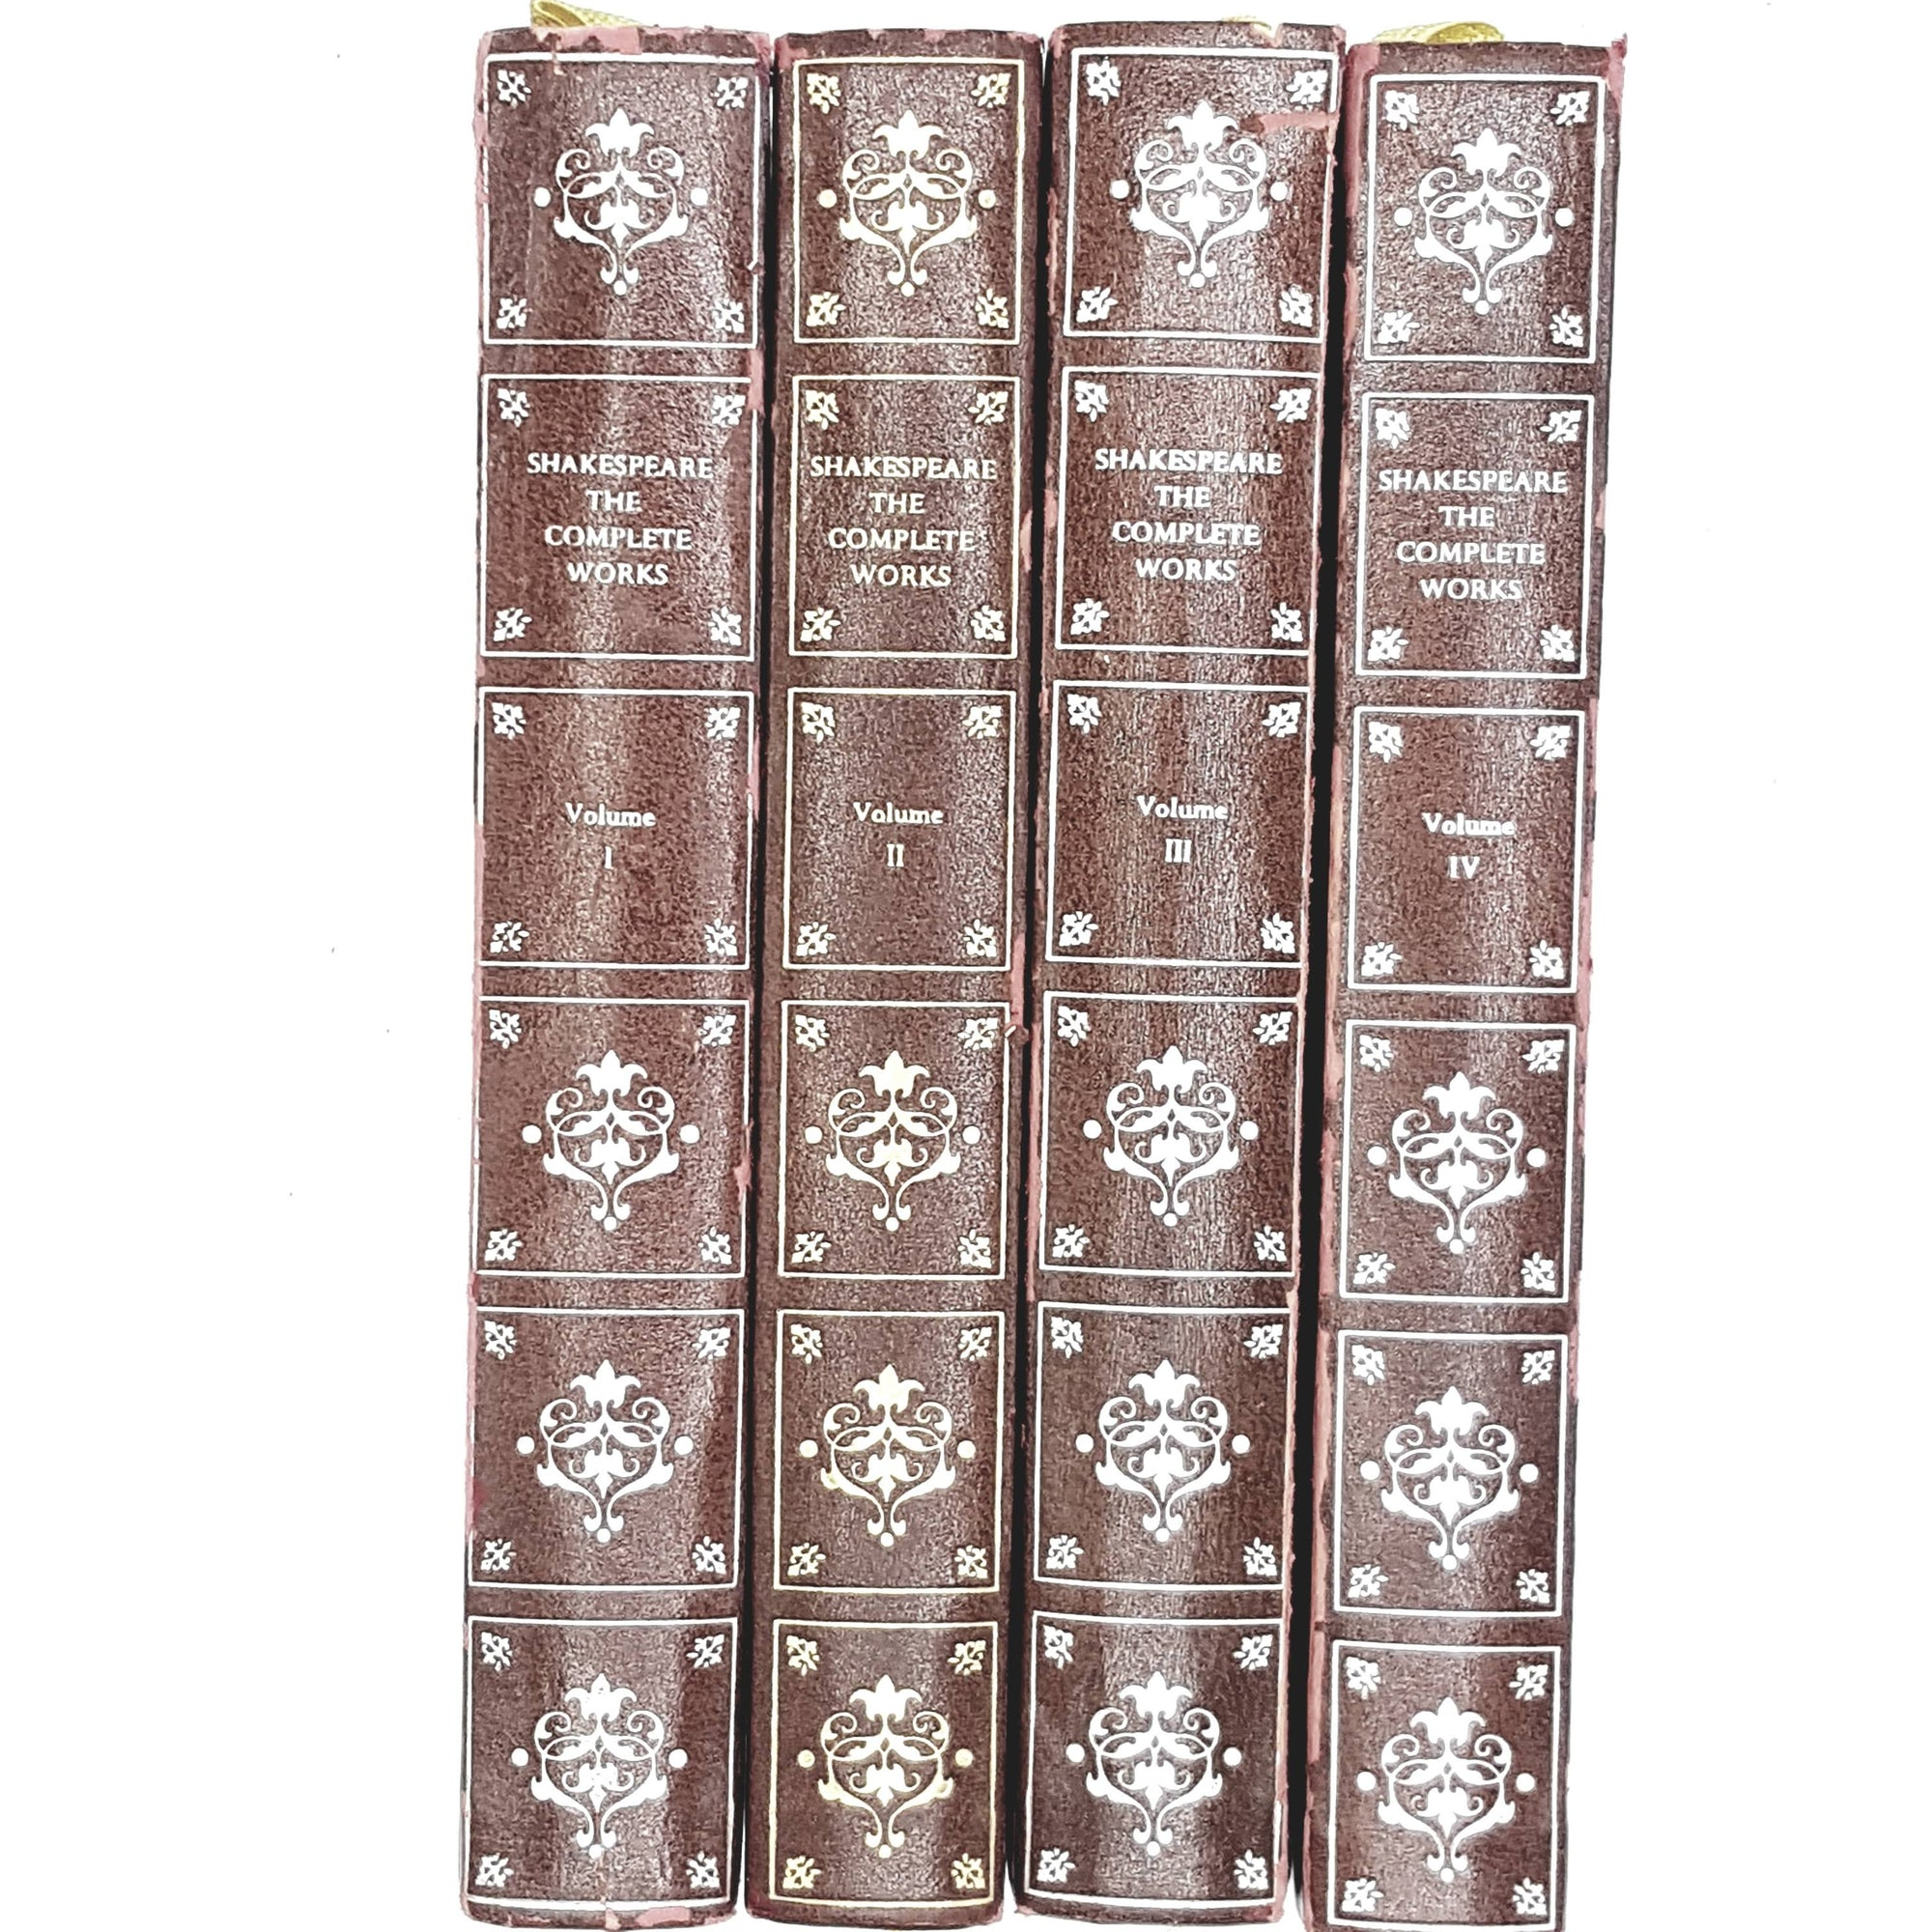 Collection William Shakespeare's Complete Works four book set